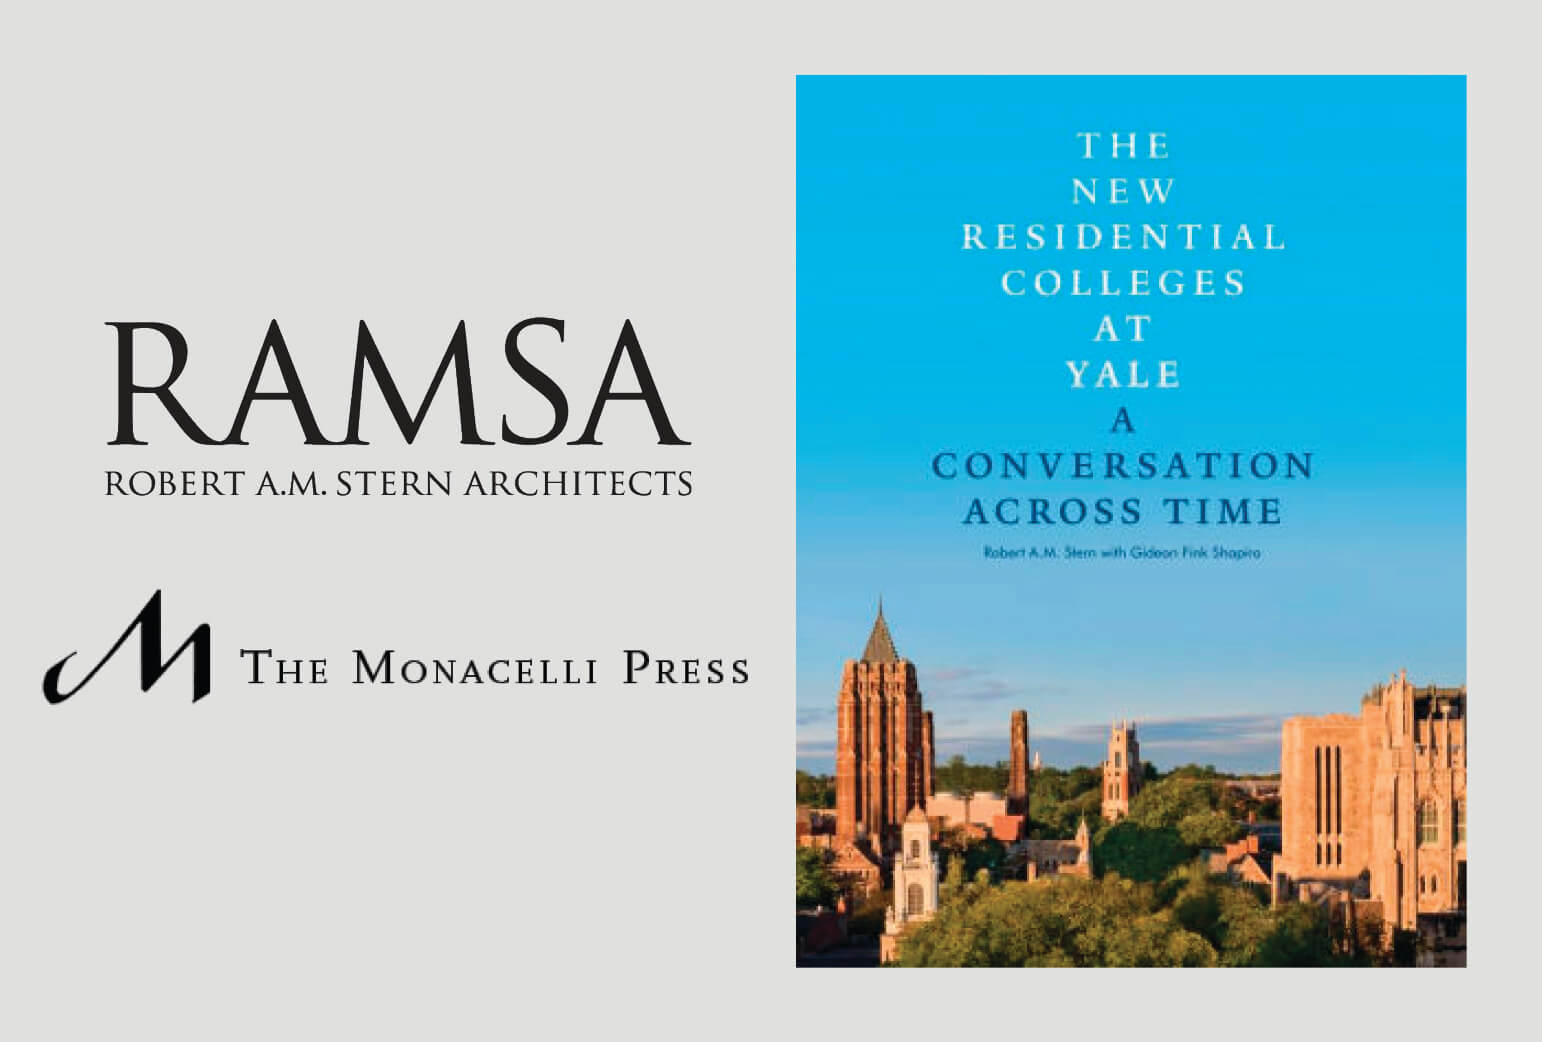 The New Residential Colleges at Yale: A Conversation Across Time Released by The Monacelli Press